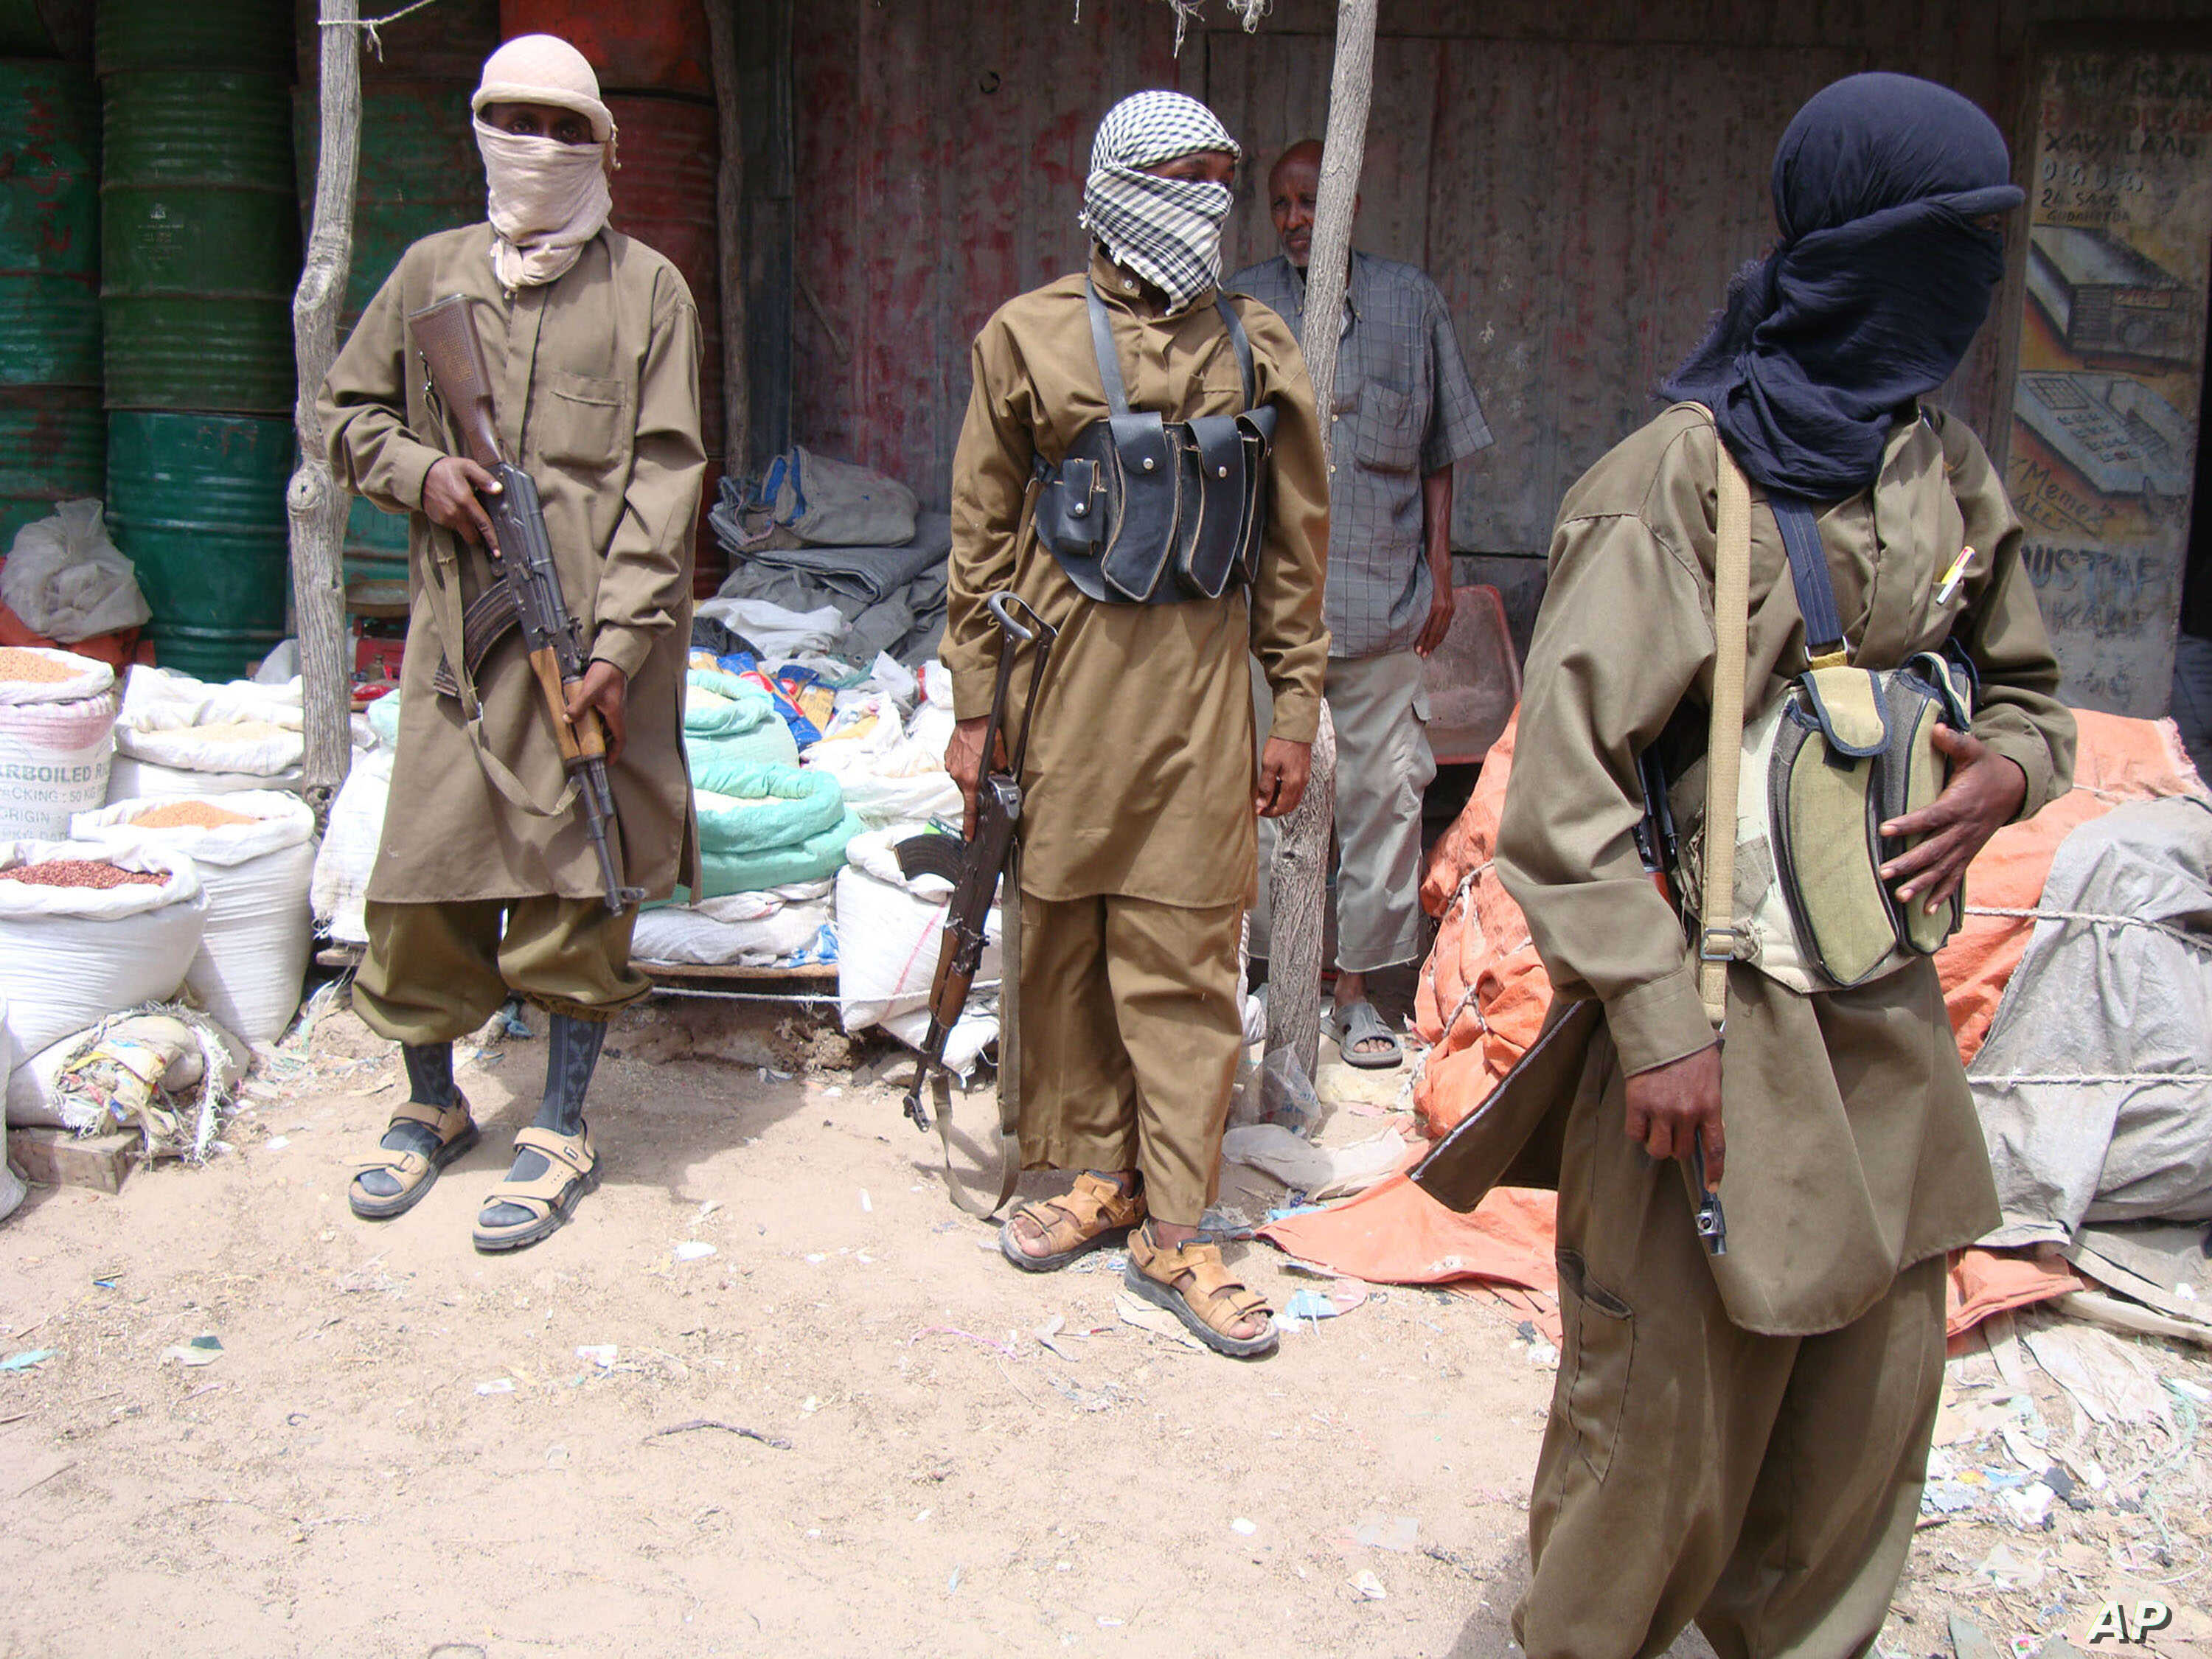 Somalia's Al-Shabab Declares War on Pro-Islamic State Group | Voice